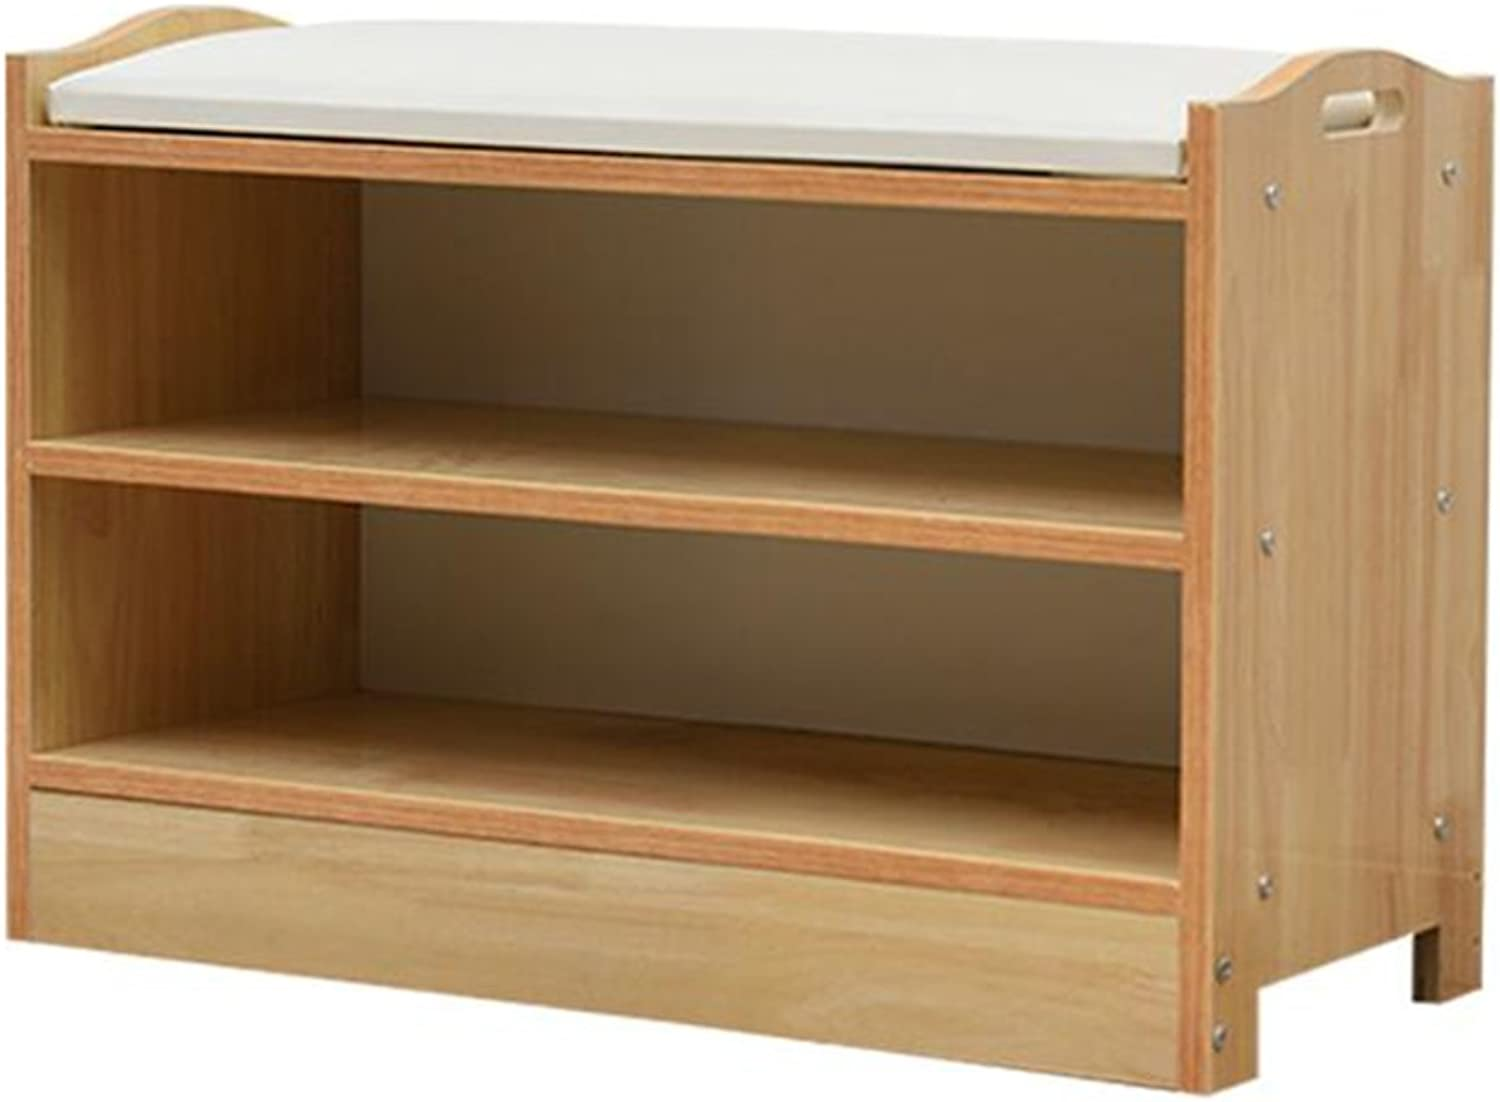 Solid Wood shoes Bench shoes Cabinet Storage Stool Multifunctional lockers Door shoes shoes Bench Double Storage Stool (Size   60  30  46.5cm)